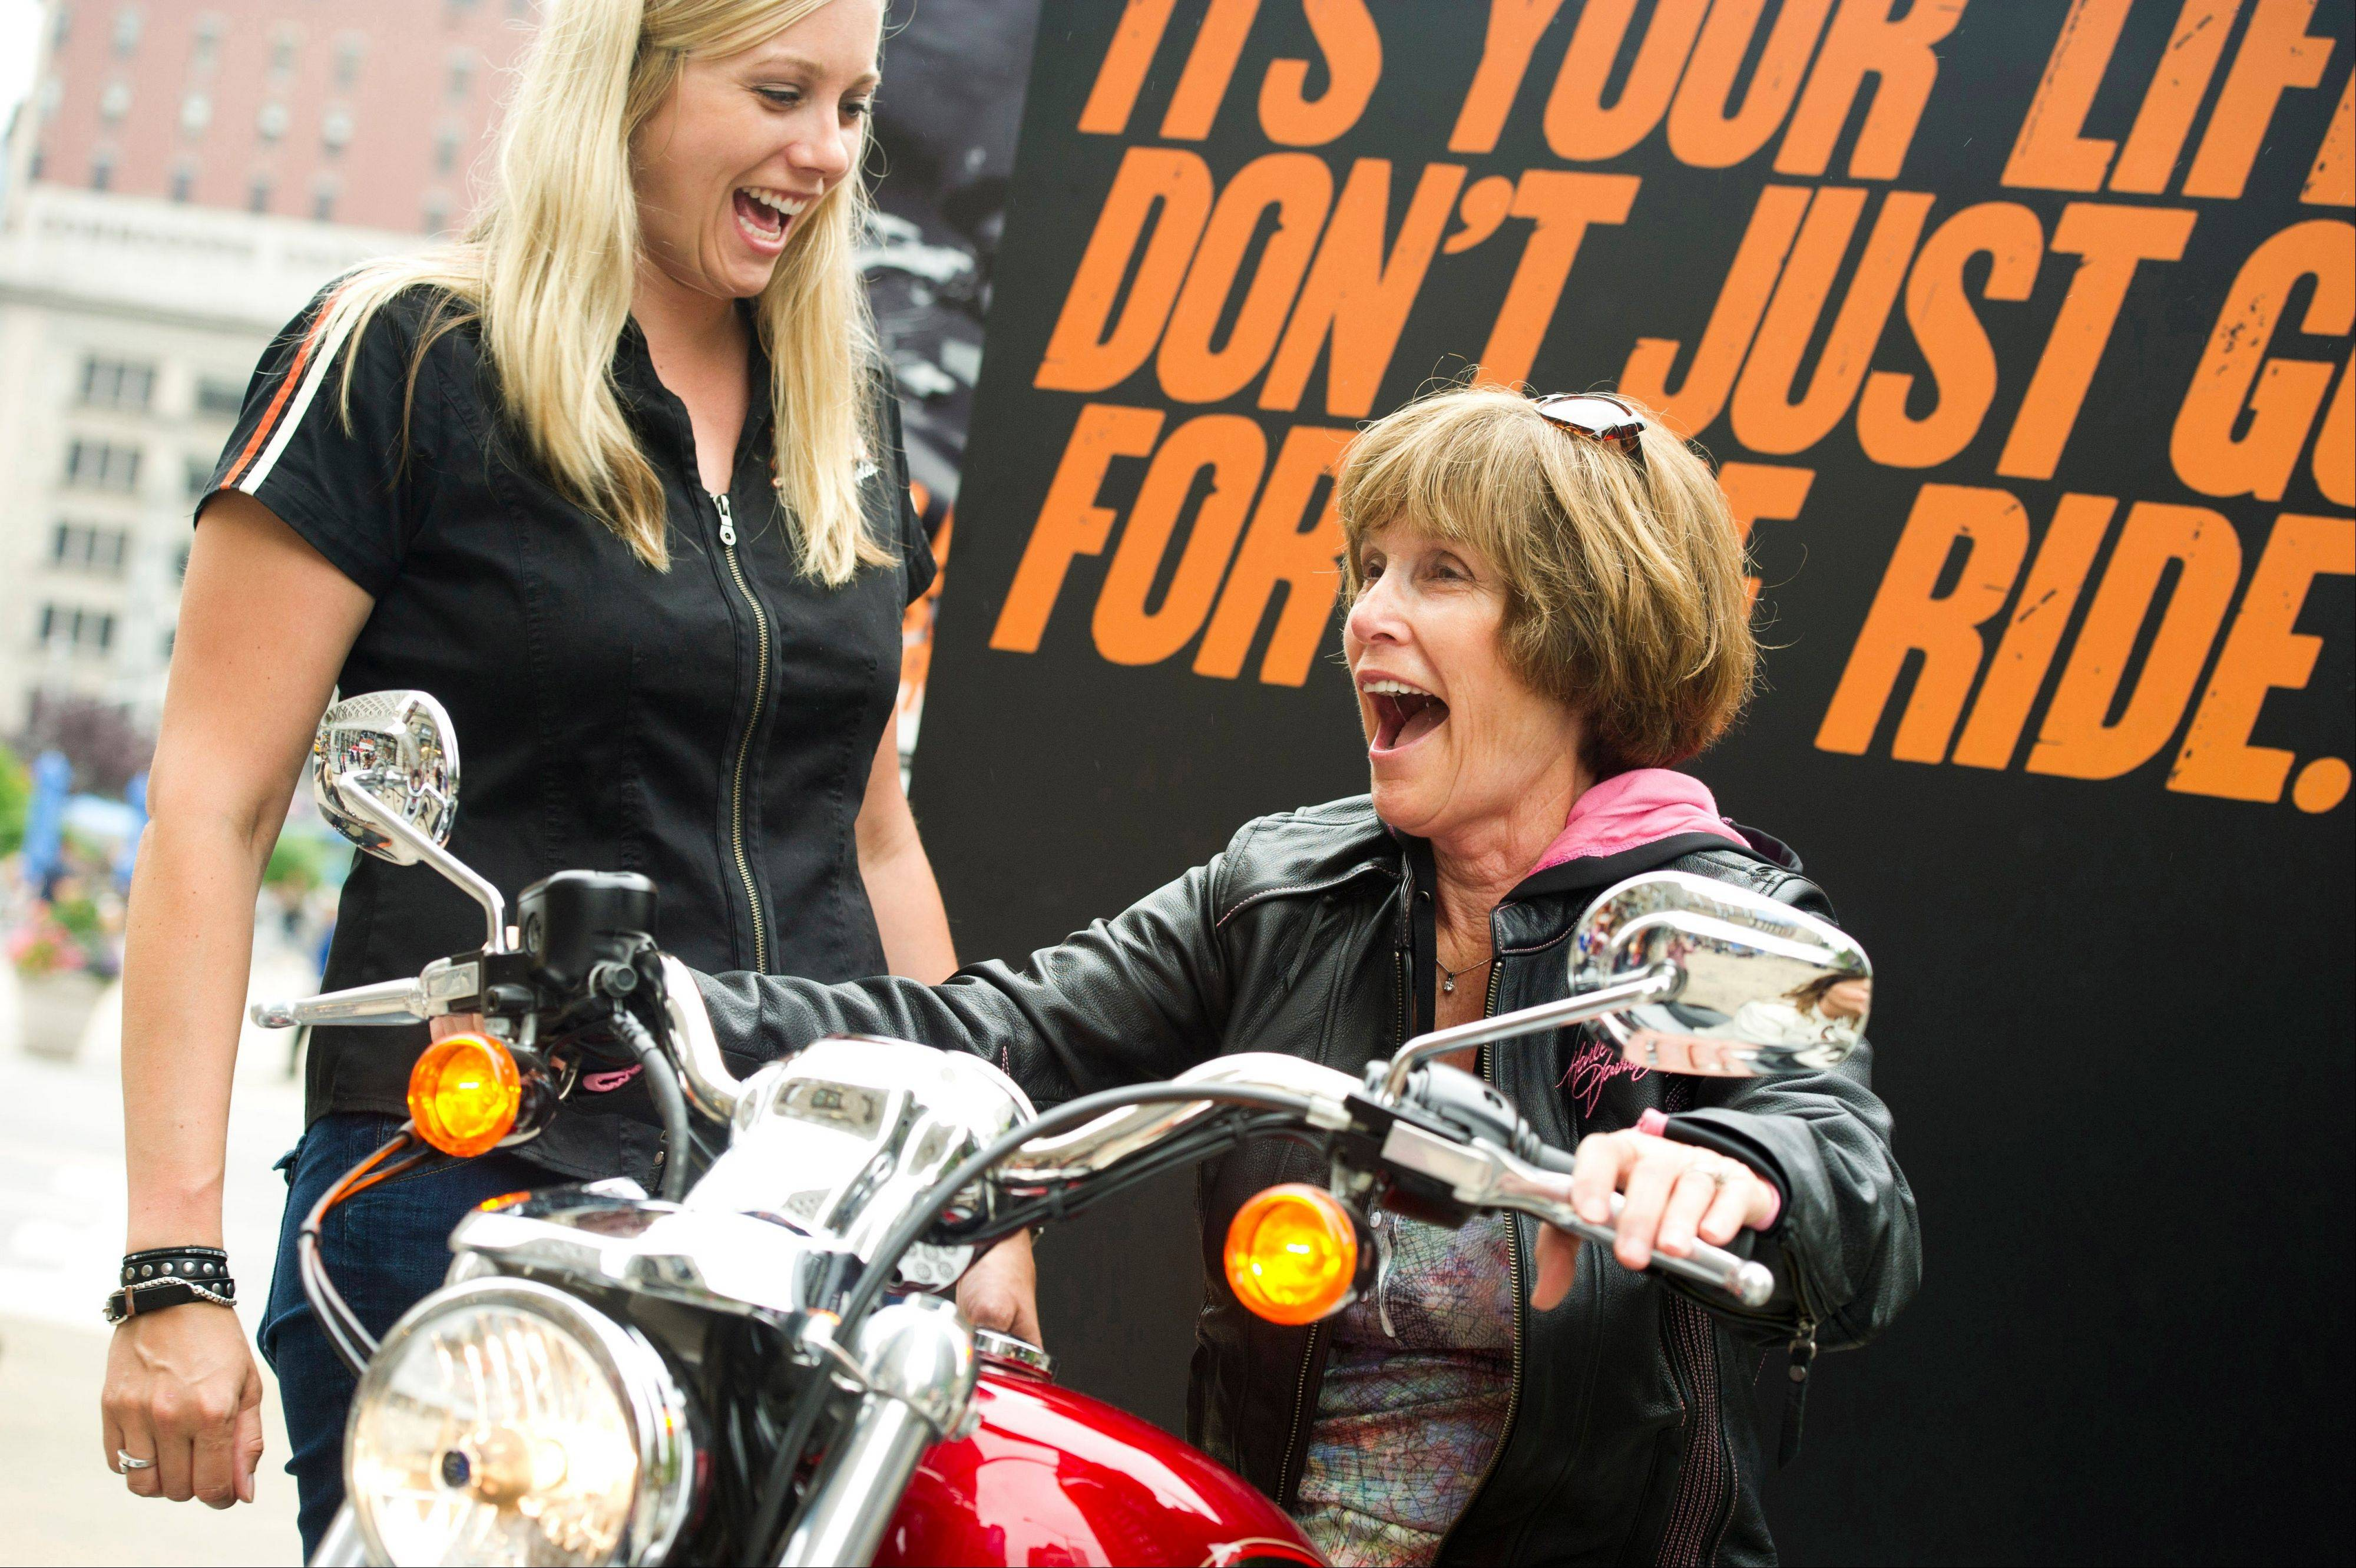 Harley-Davidson representative Dana Wilke, left, smiles as Nancy Dilley, 68, of Overland Park, Kan., learns the basics while test riding a motorcycle in New York on June 13. Harley-Davidson, based in Milwaukee, is the market leader in sales to women. The company travels around the country offering training and safety tips for women.